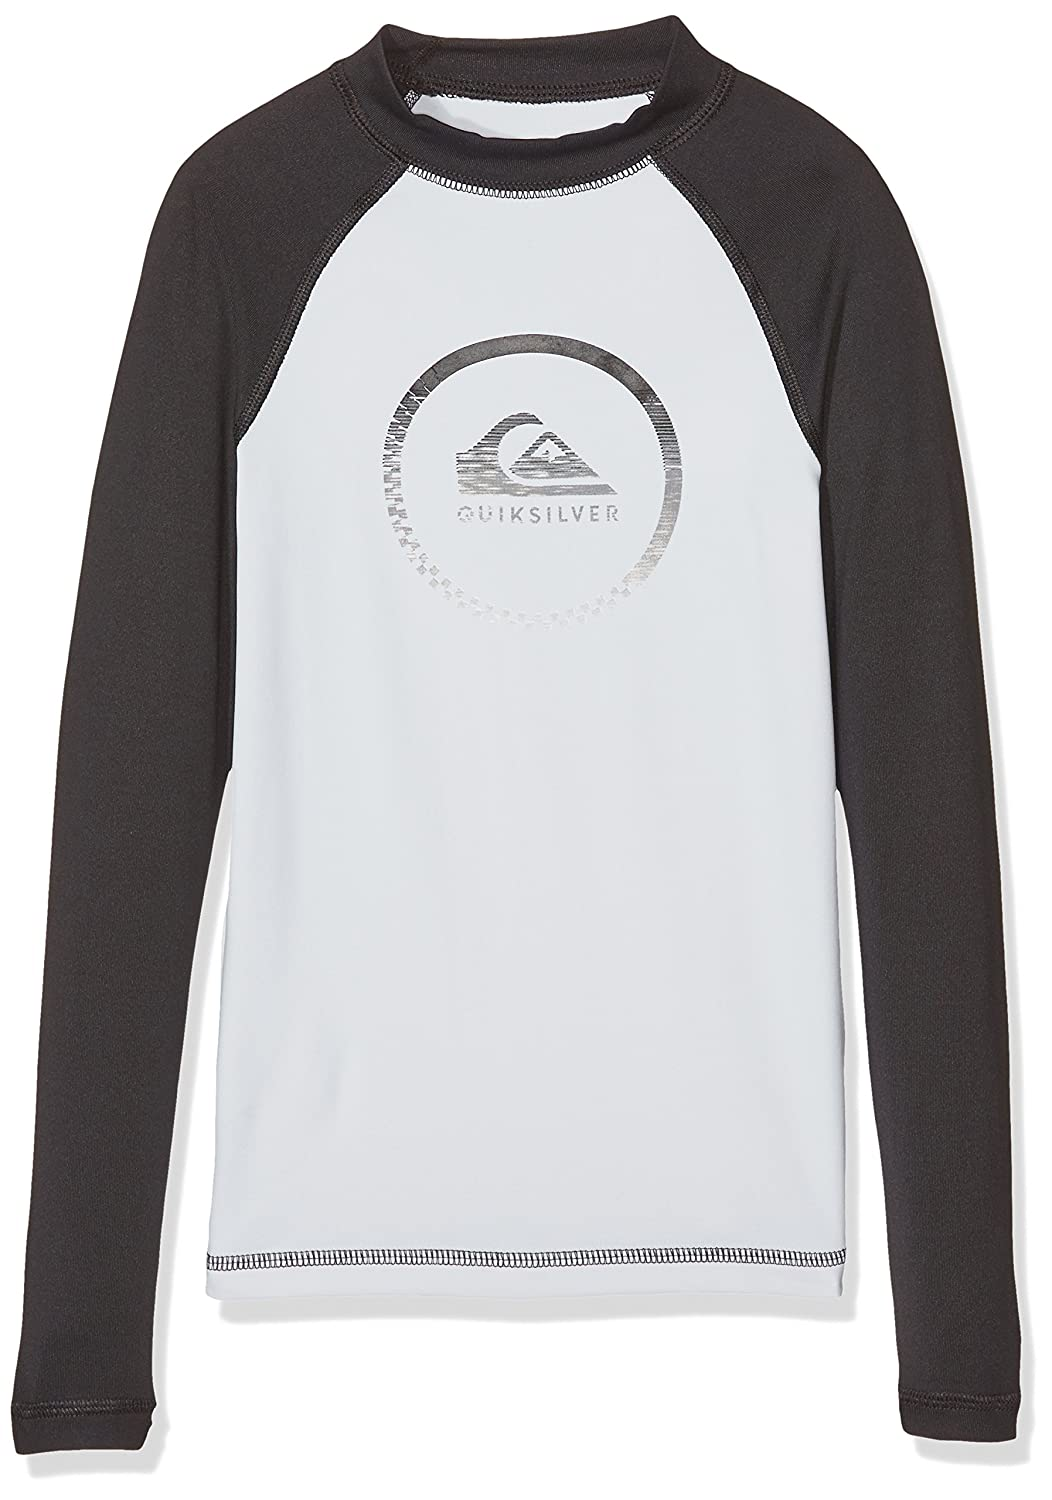 Quiksilver activess Maglietta Ragazzo, Ragazzo, T-shirt, Activess, Snow White/Noir, FR : 12 ans (Taille Fabricant : M) QUILX|#Quiksilver UQBWR03040